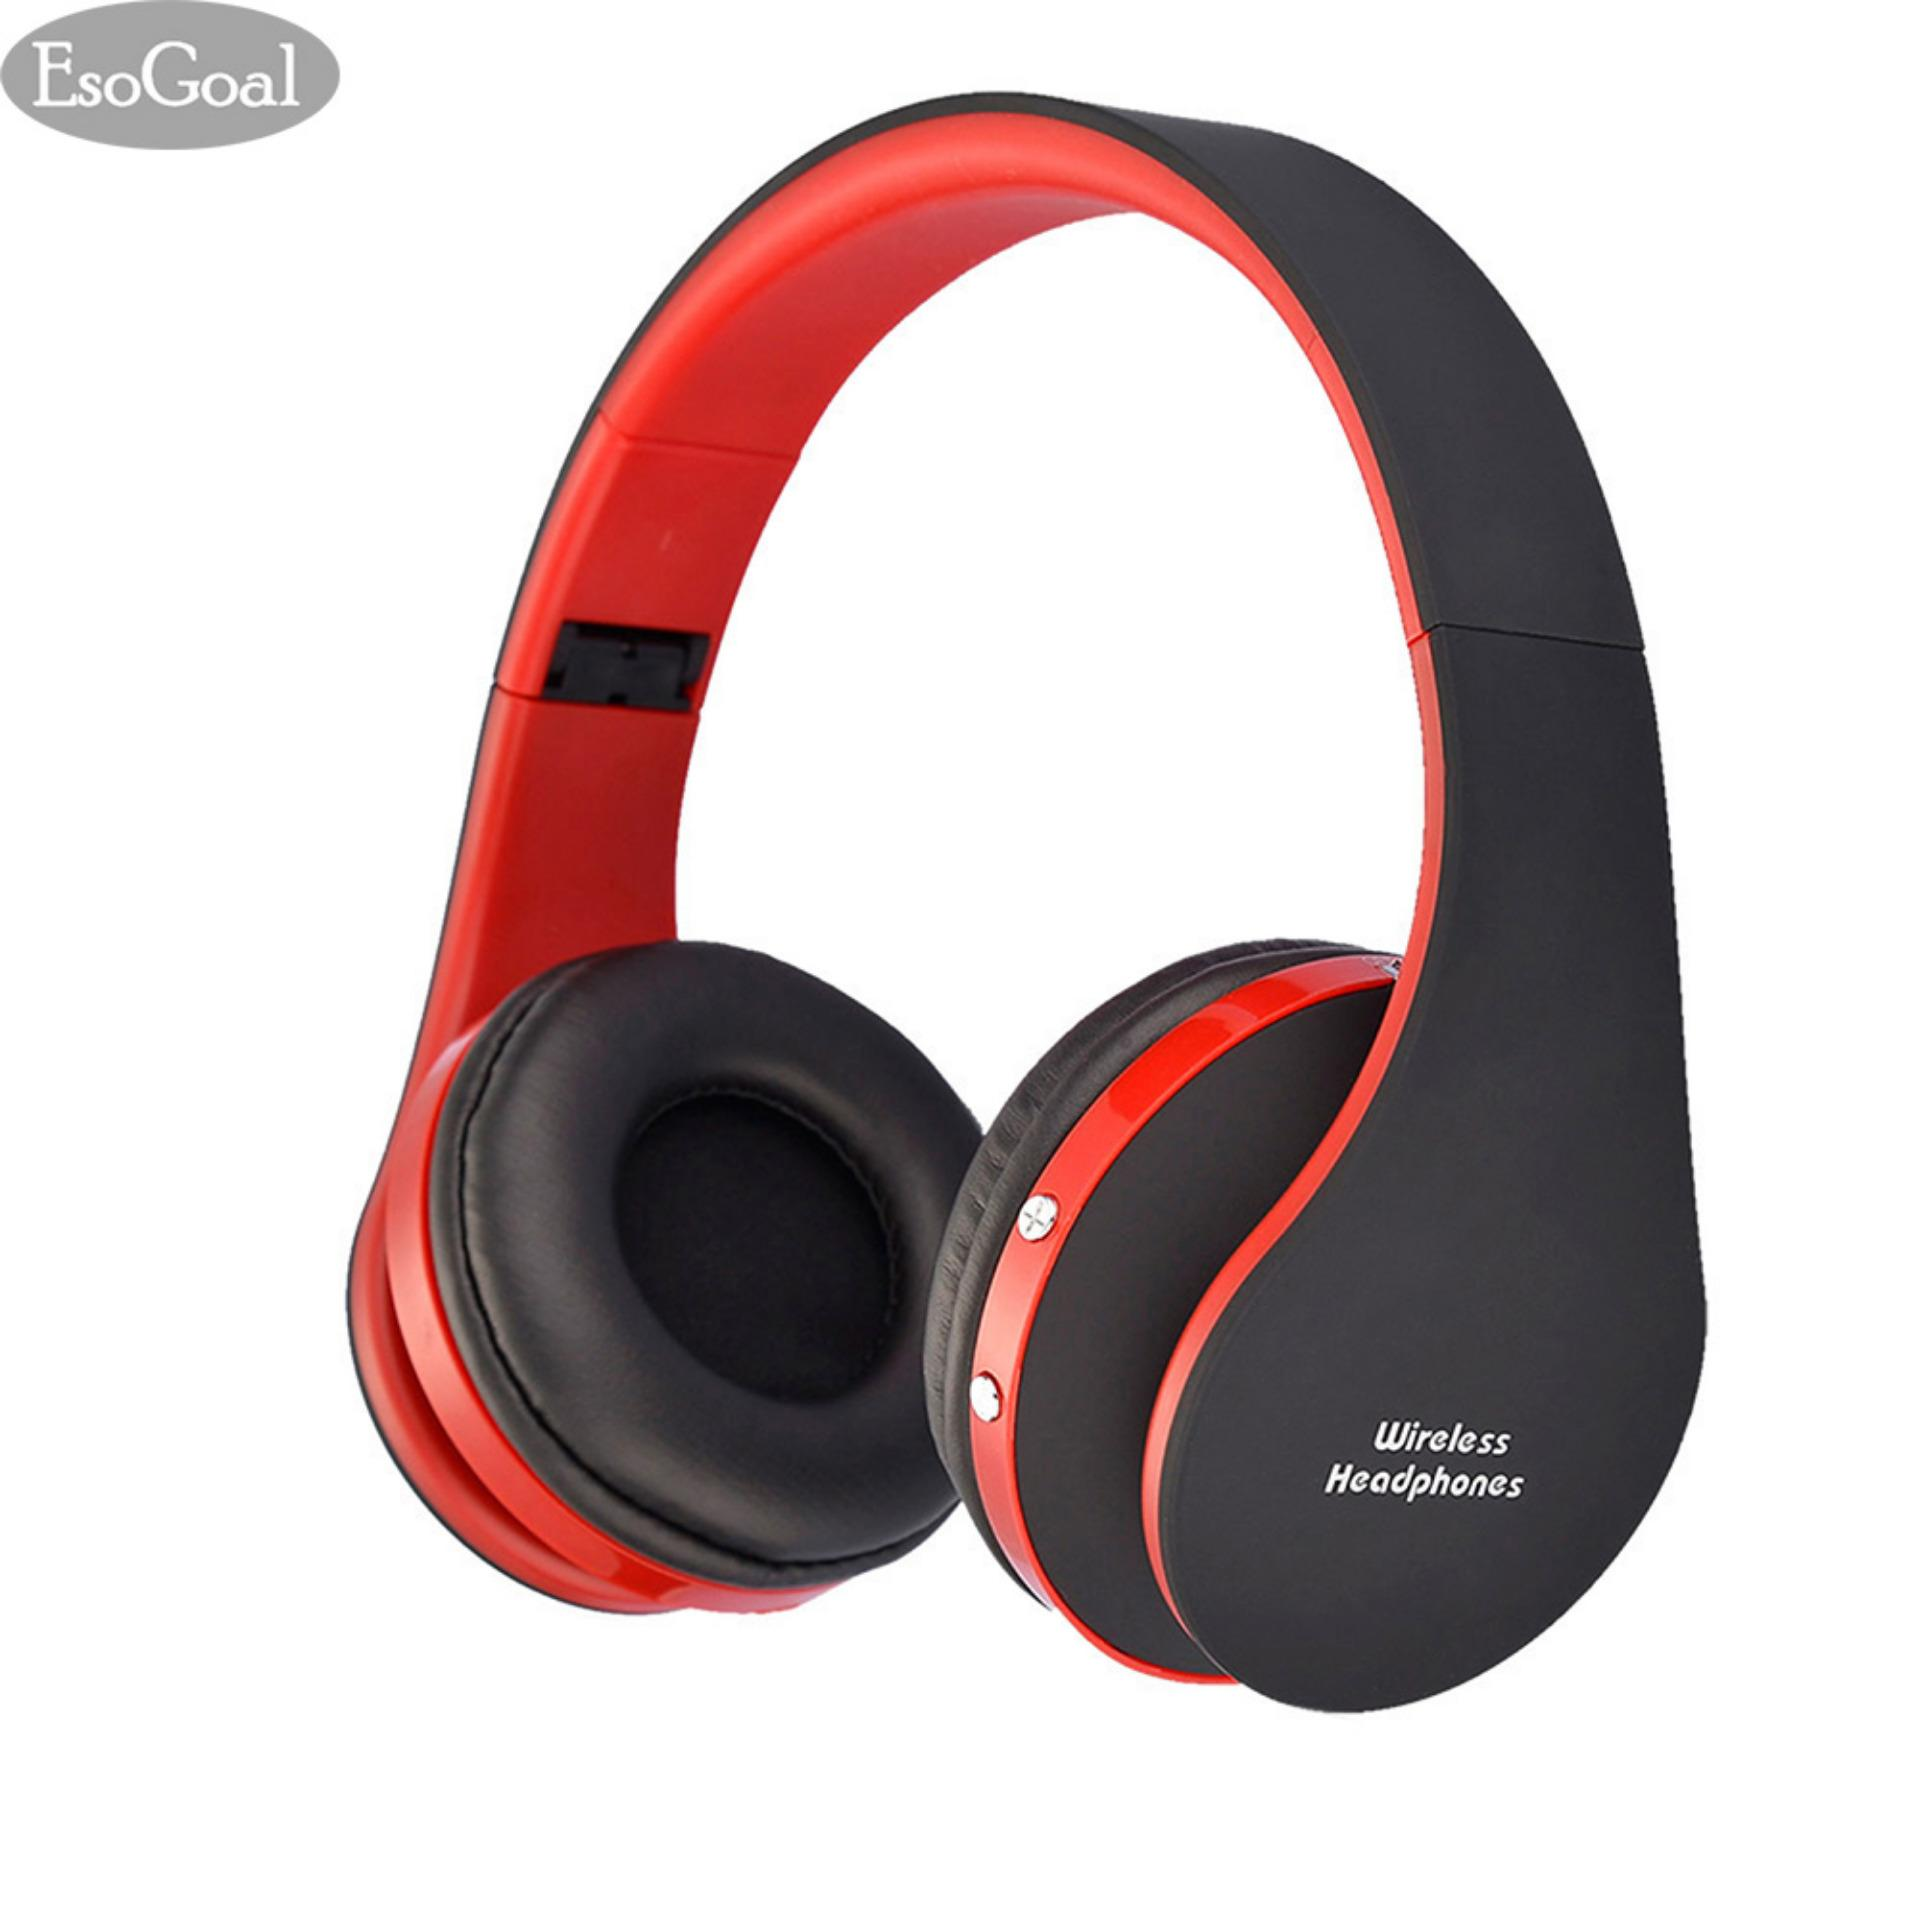 Kualitas Esogoal Nirkabel Bluetooth V4 1 Headphone In Ear Earphone Stereo Earbud Sport Headset Dengan Mic Merah Hitam Esogoal